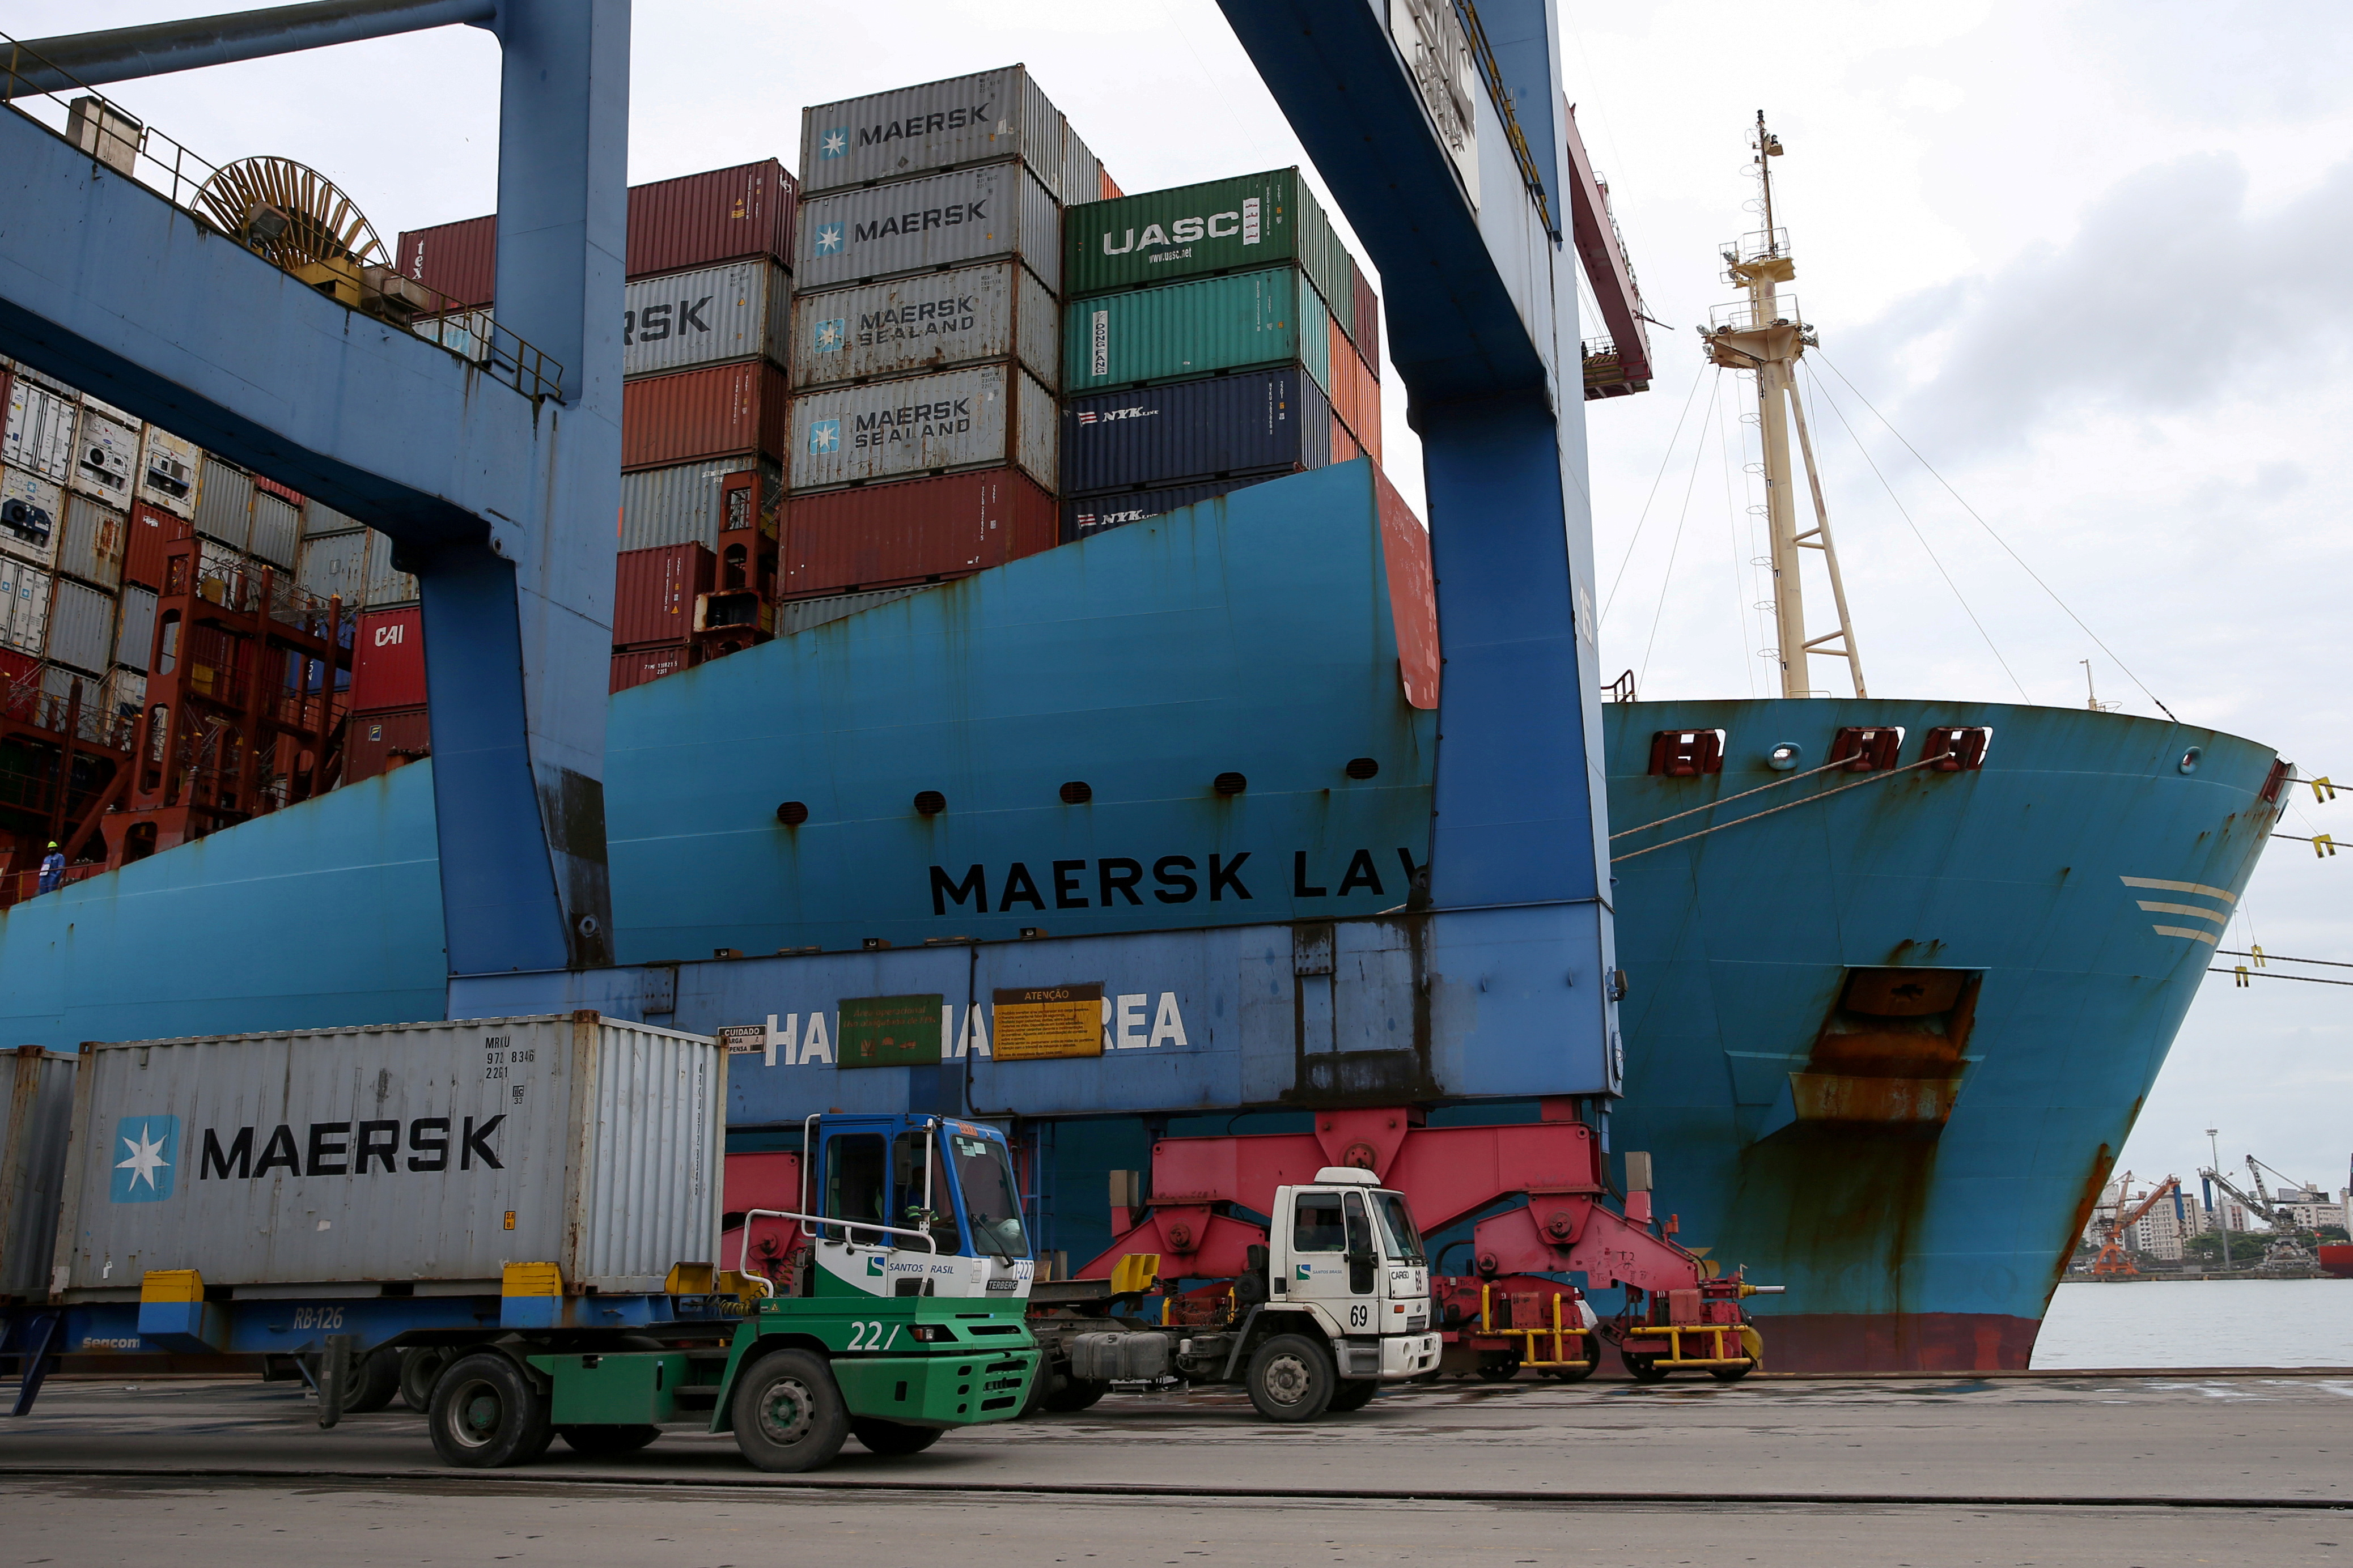 A Maersk ship and containers are seen at the Port of Santos, Brazil,  September 23, 2019. REUTERS/Amanda Perobelli/File Photo